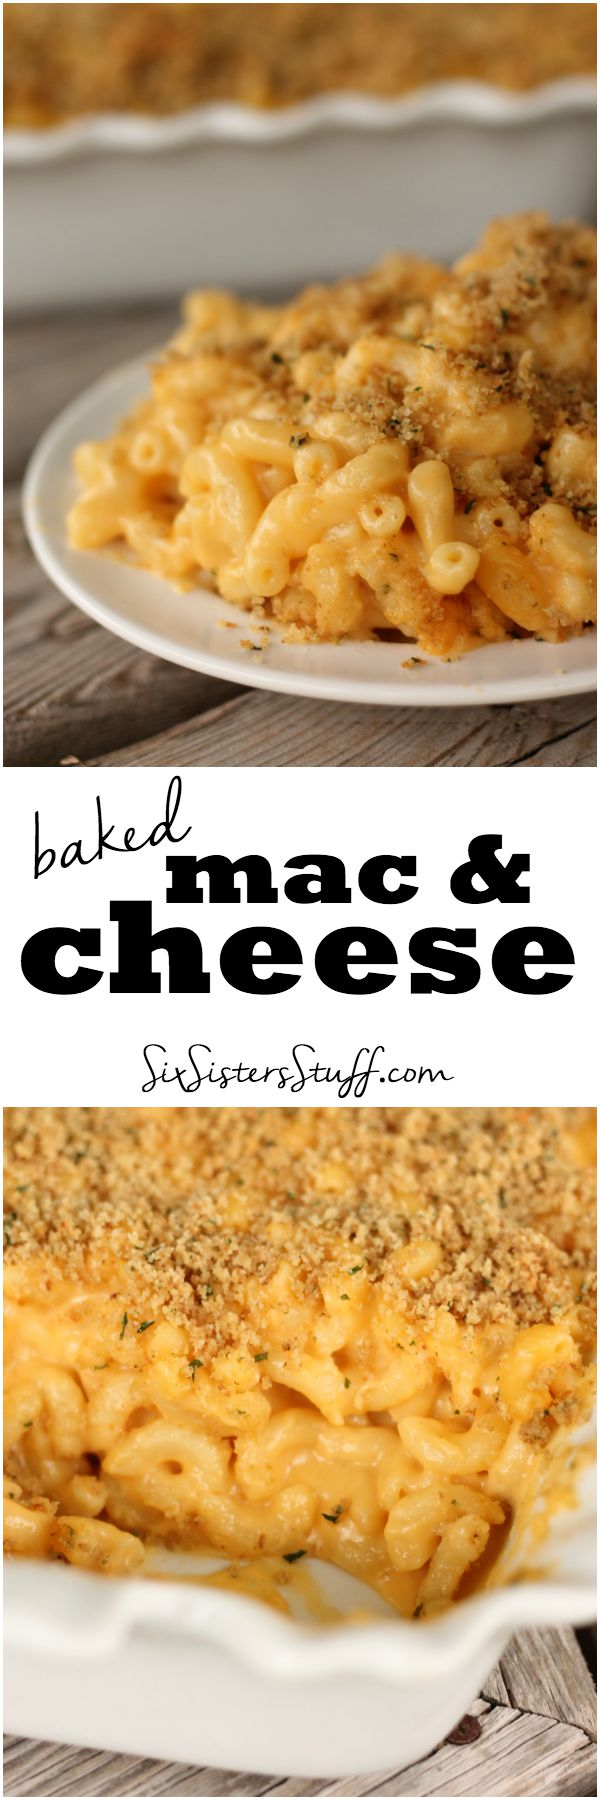 Baked Mac and Cheese - Six Sisters' Stuff